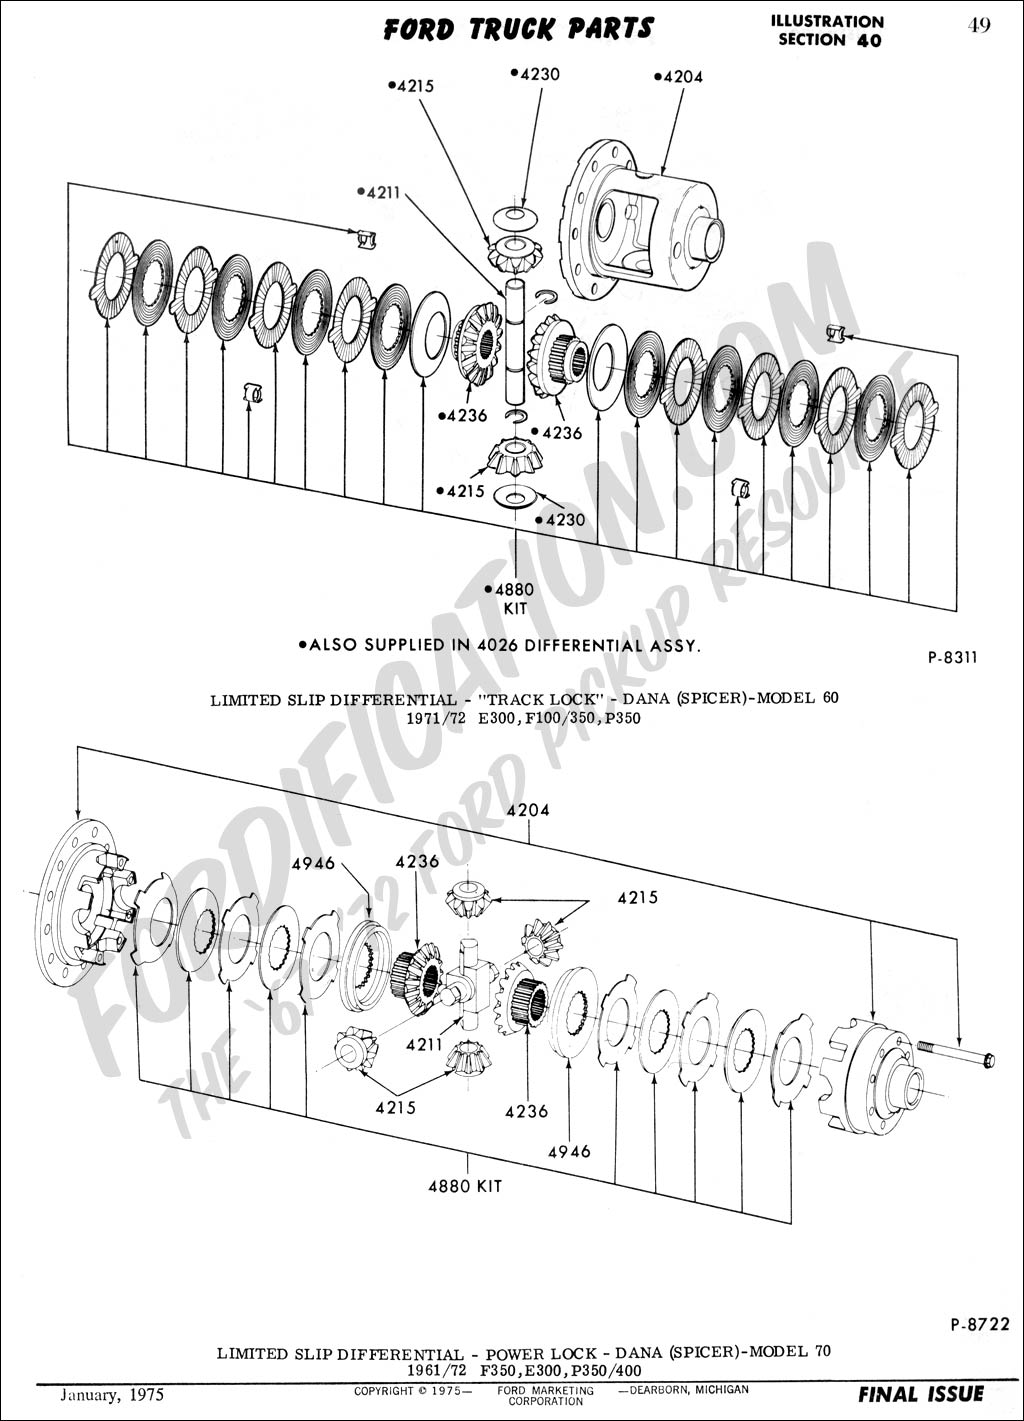 2010 Ford Taurus Limited Parts Diagram on 2013 Taurus Timing Chain Marks